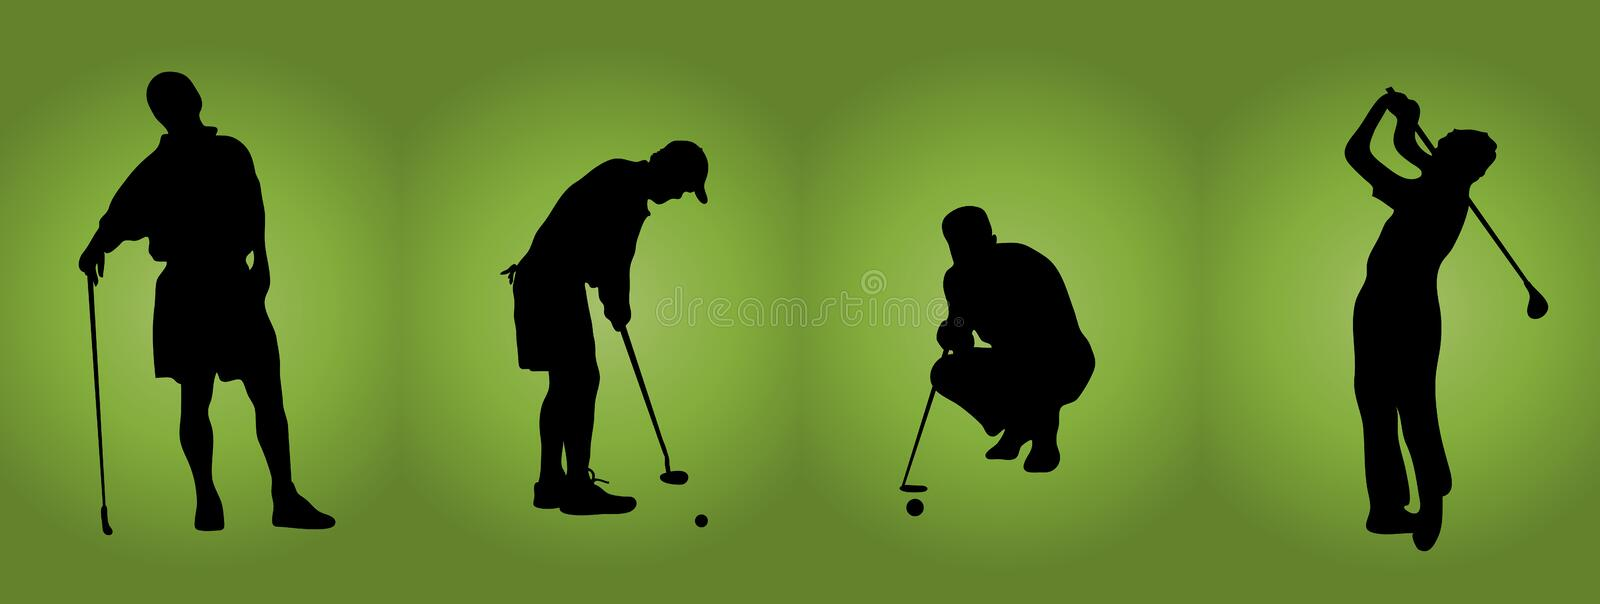 Hommes au golf illustration stock